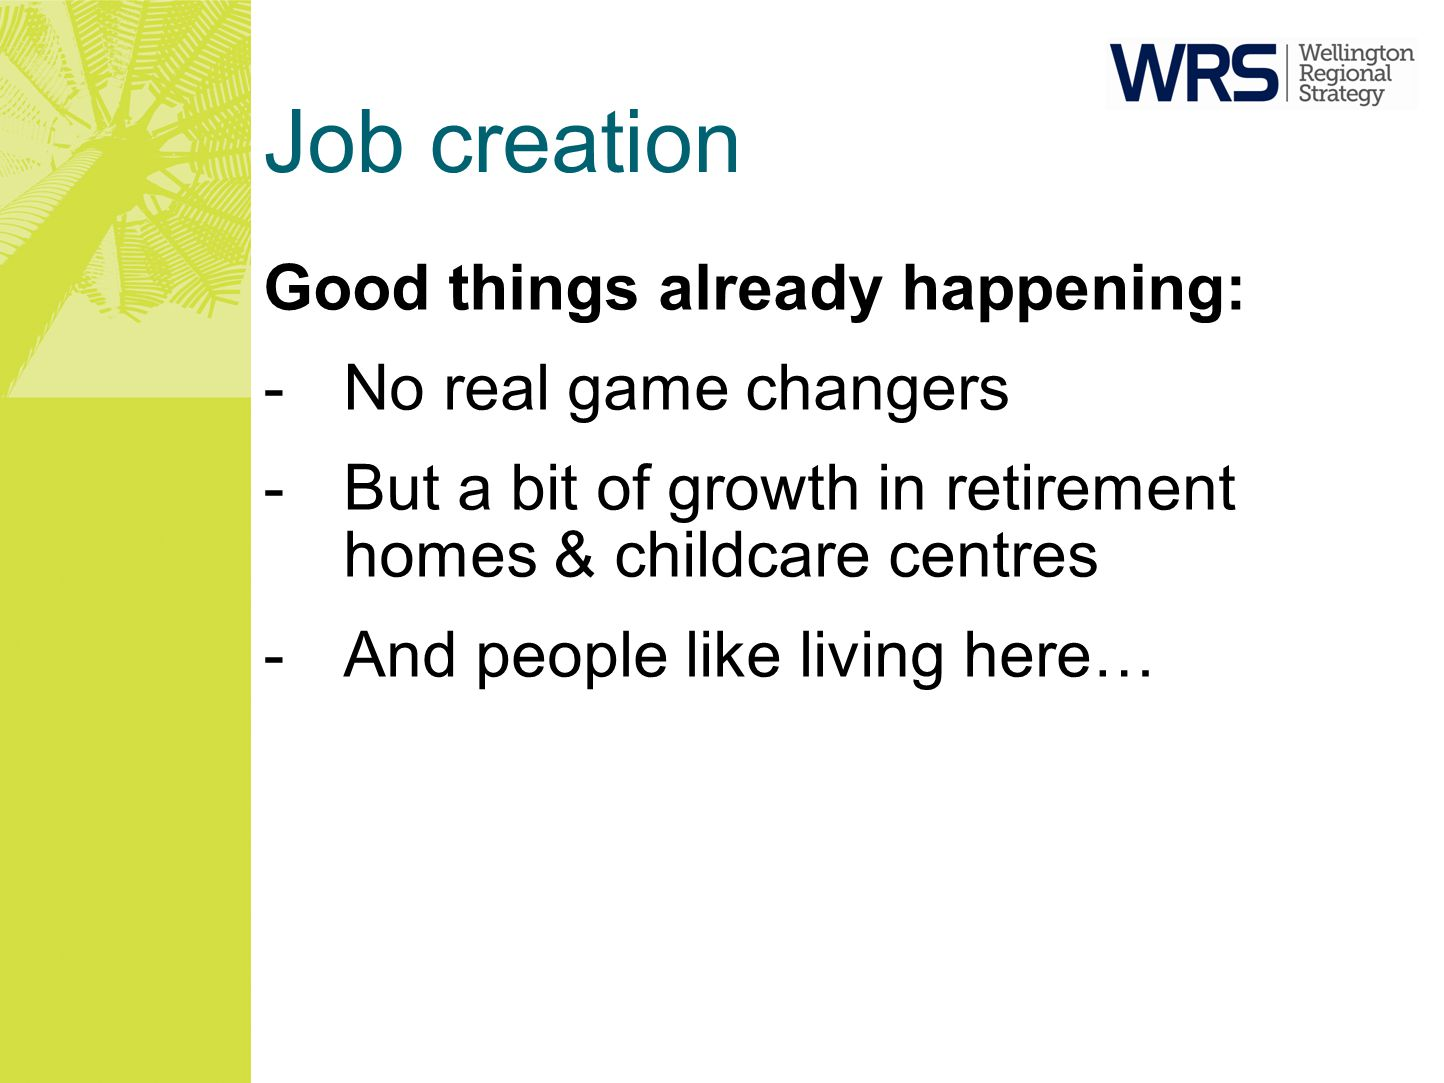 Job creation Good things already happening: -No real game changers -But a bit of growth in retirement homes & childcare centres -And people like livin